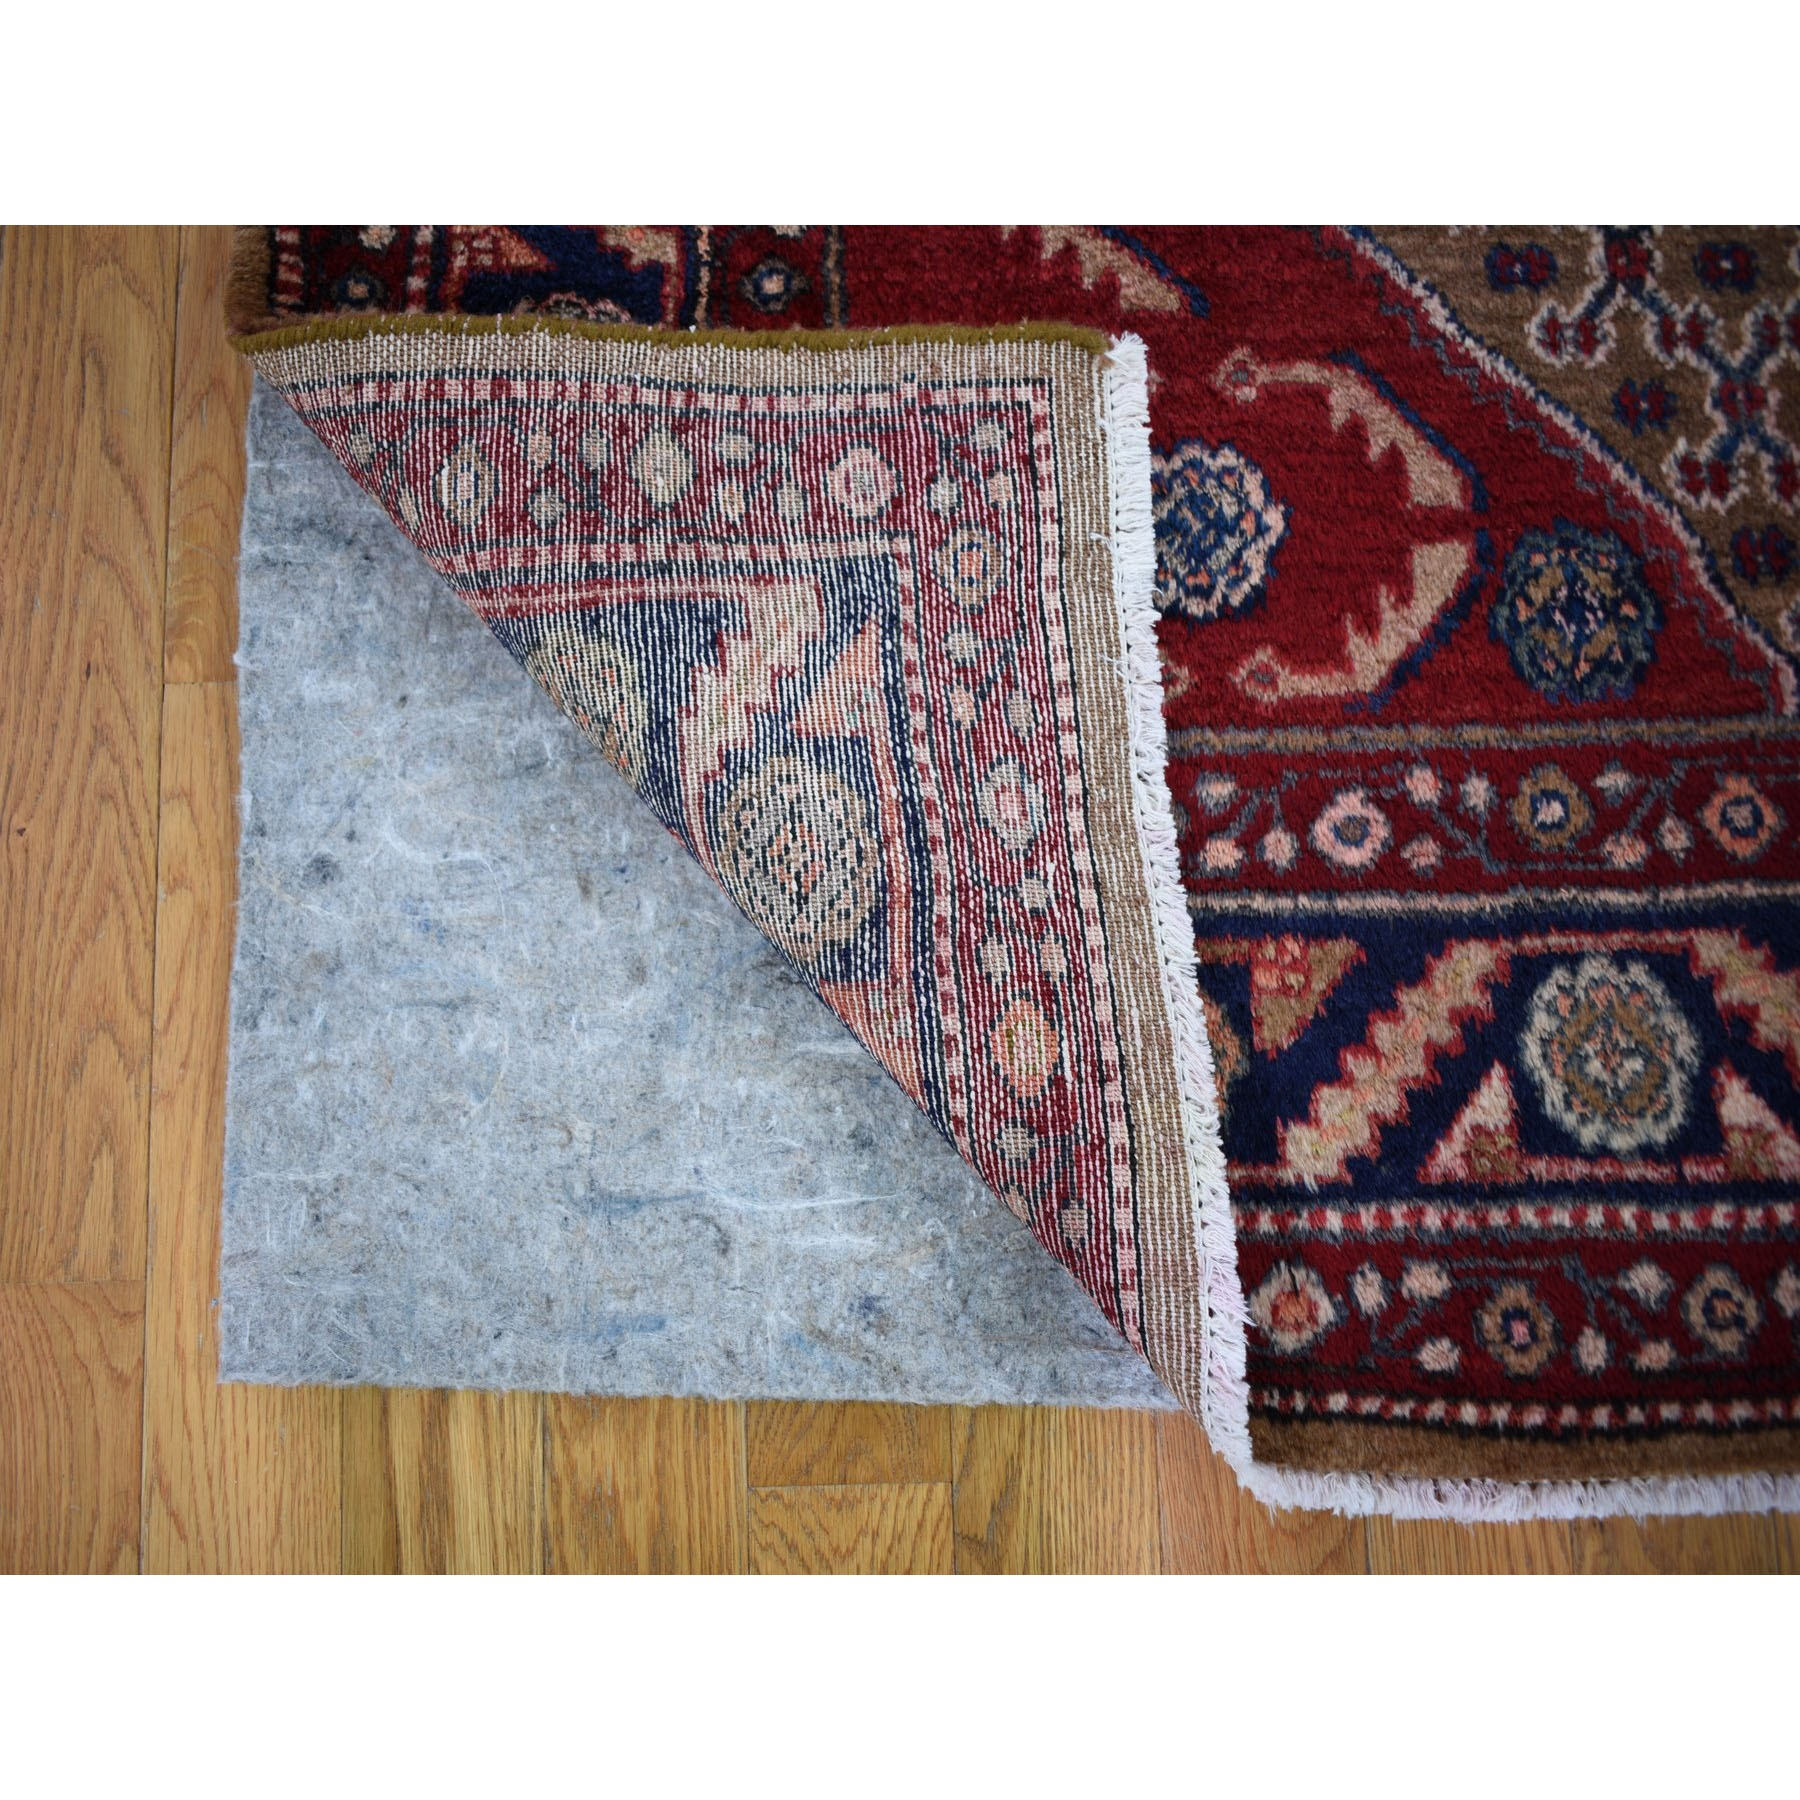 """5'x9'6"""" Gallery Size Mocha New Persian Serab Camel Hair Full Pile Pure Wool Hand Knotted Oriental Rug"""